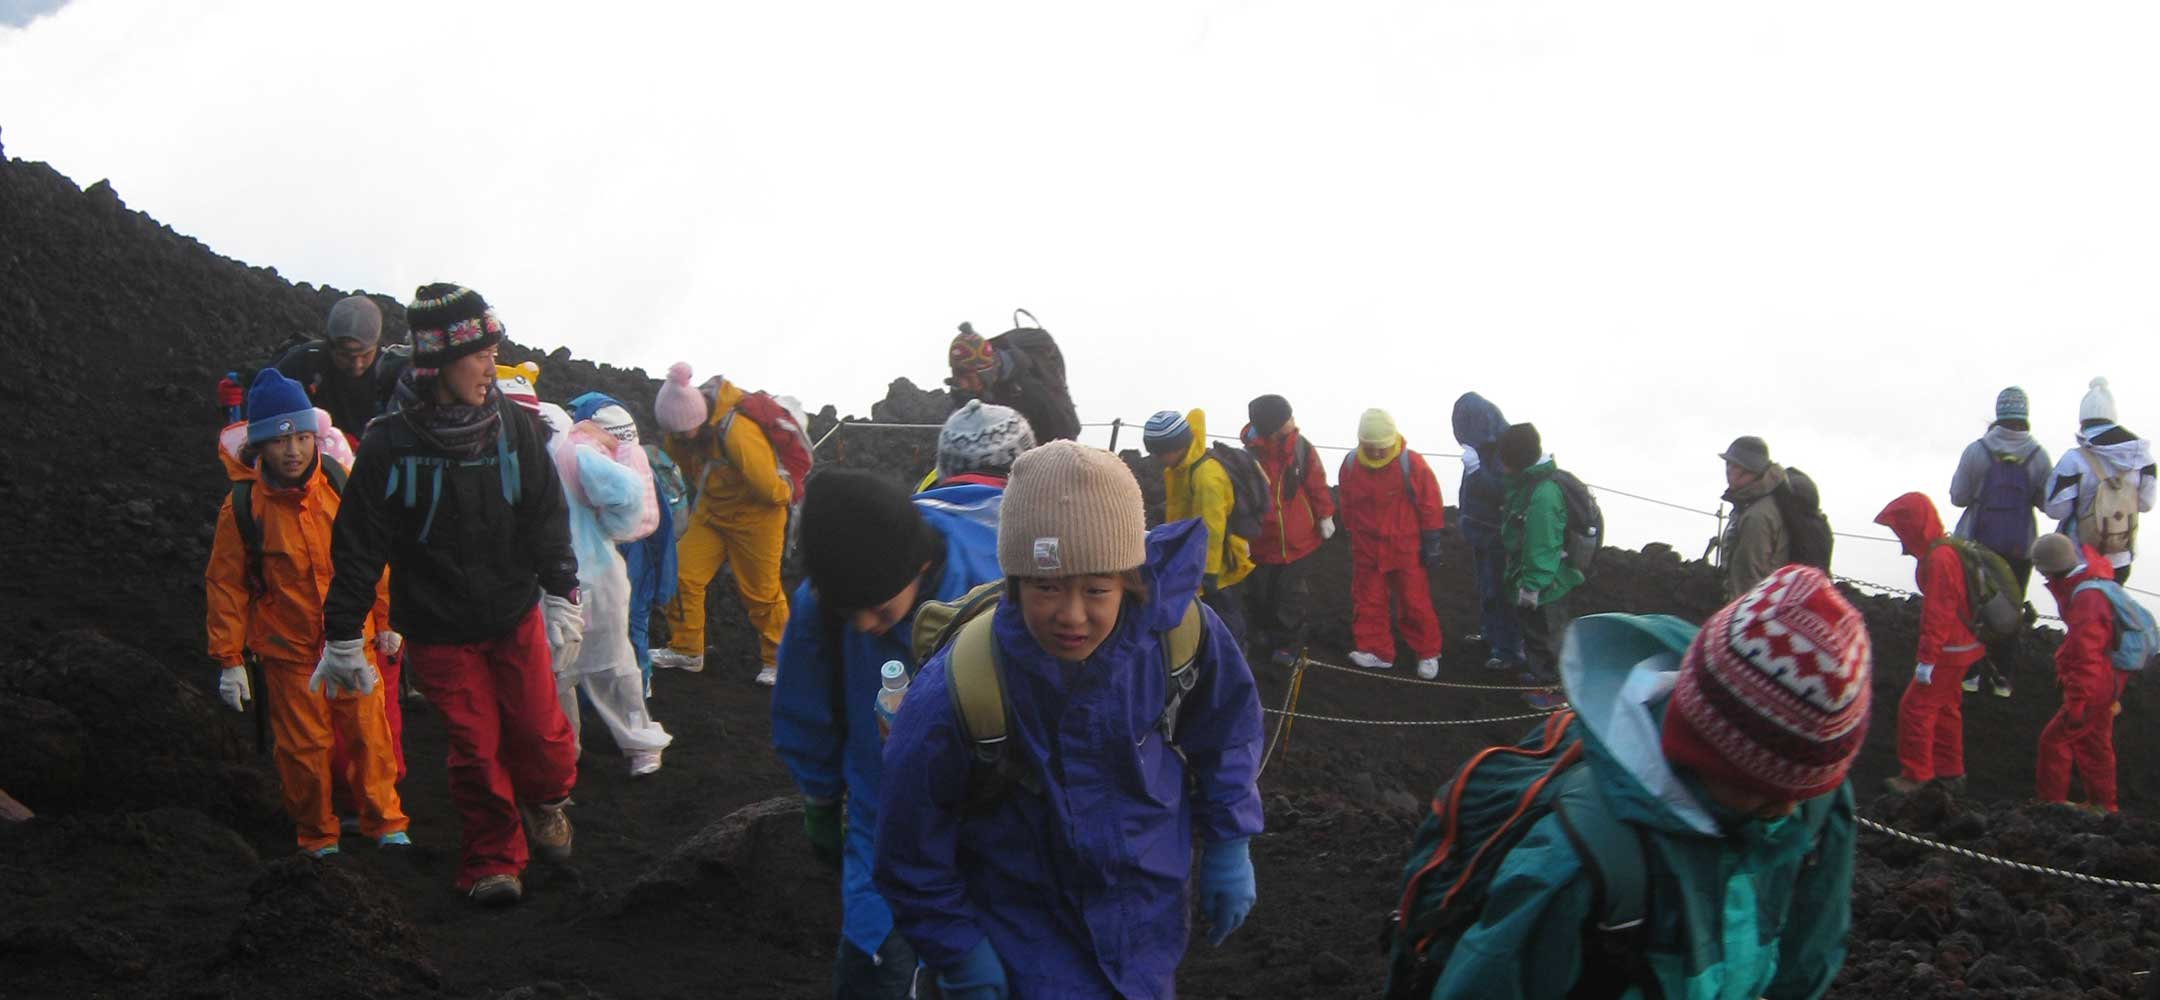 Mount Fuji climb (from Hakone)